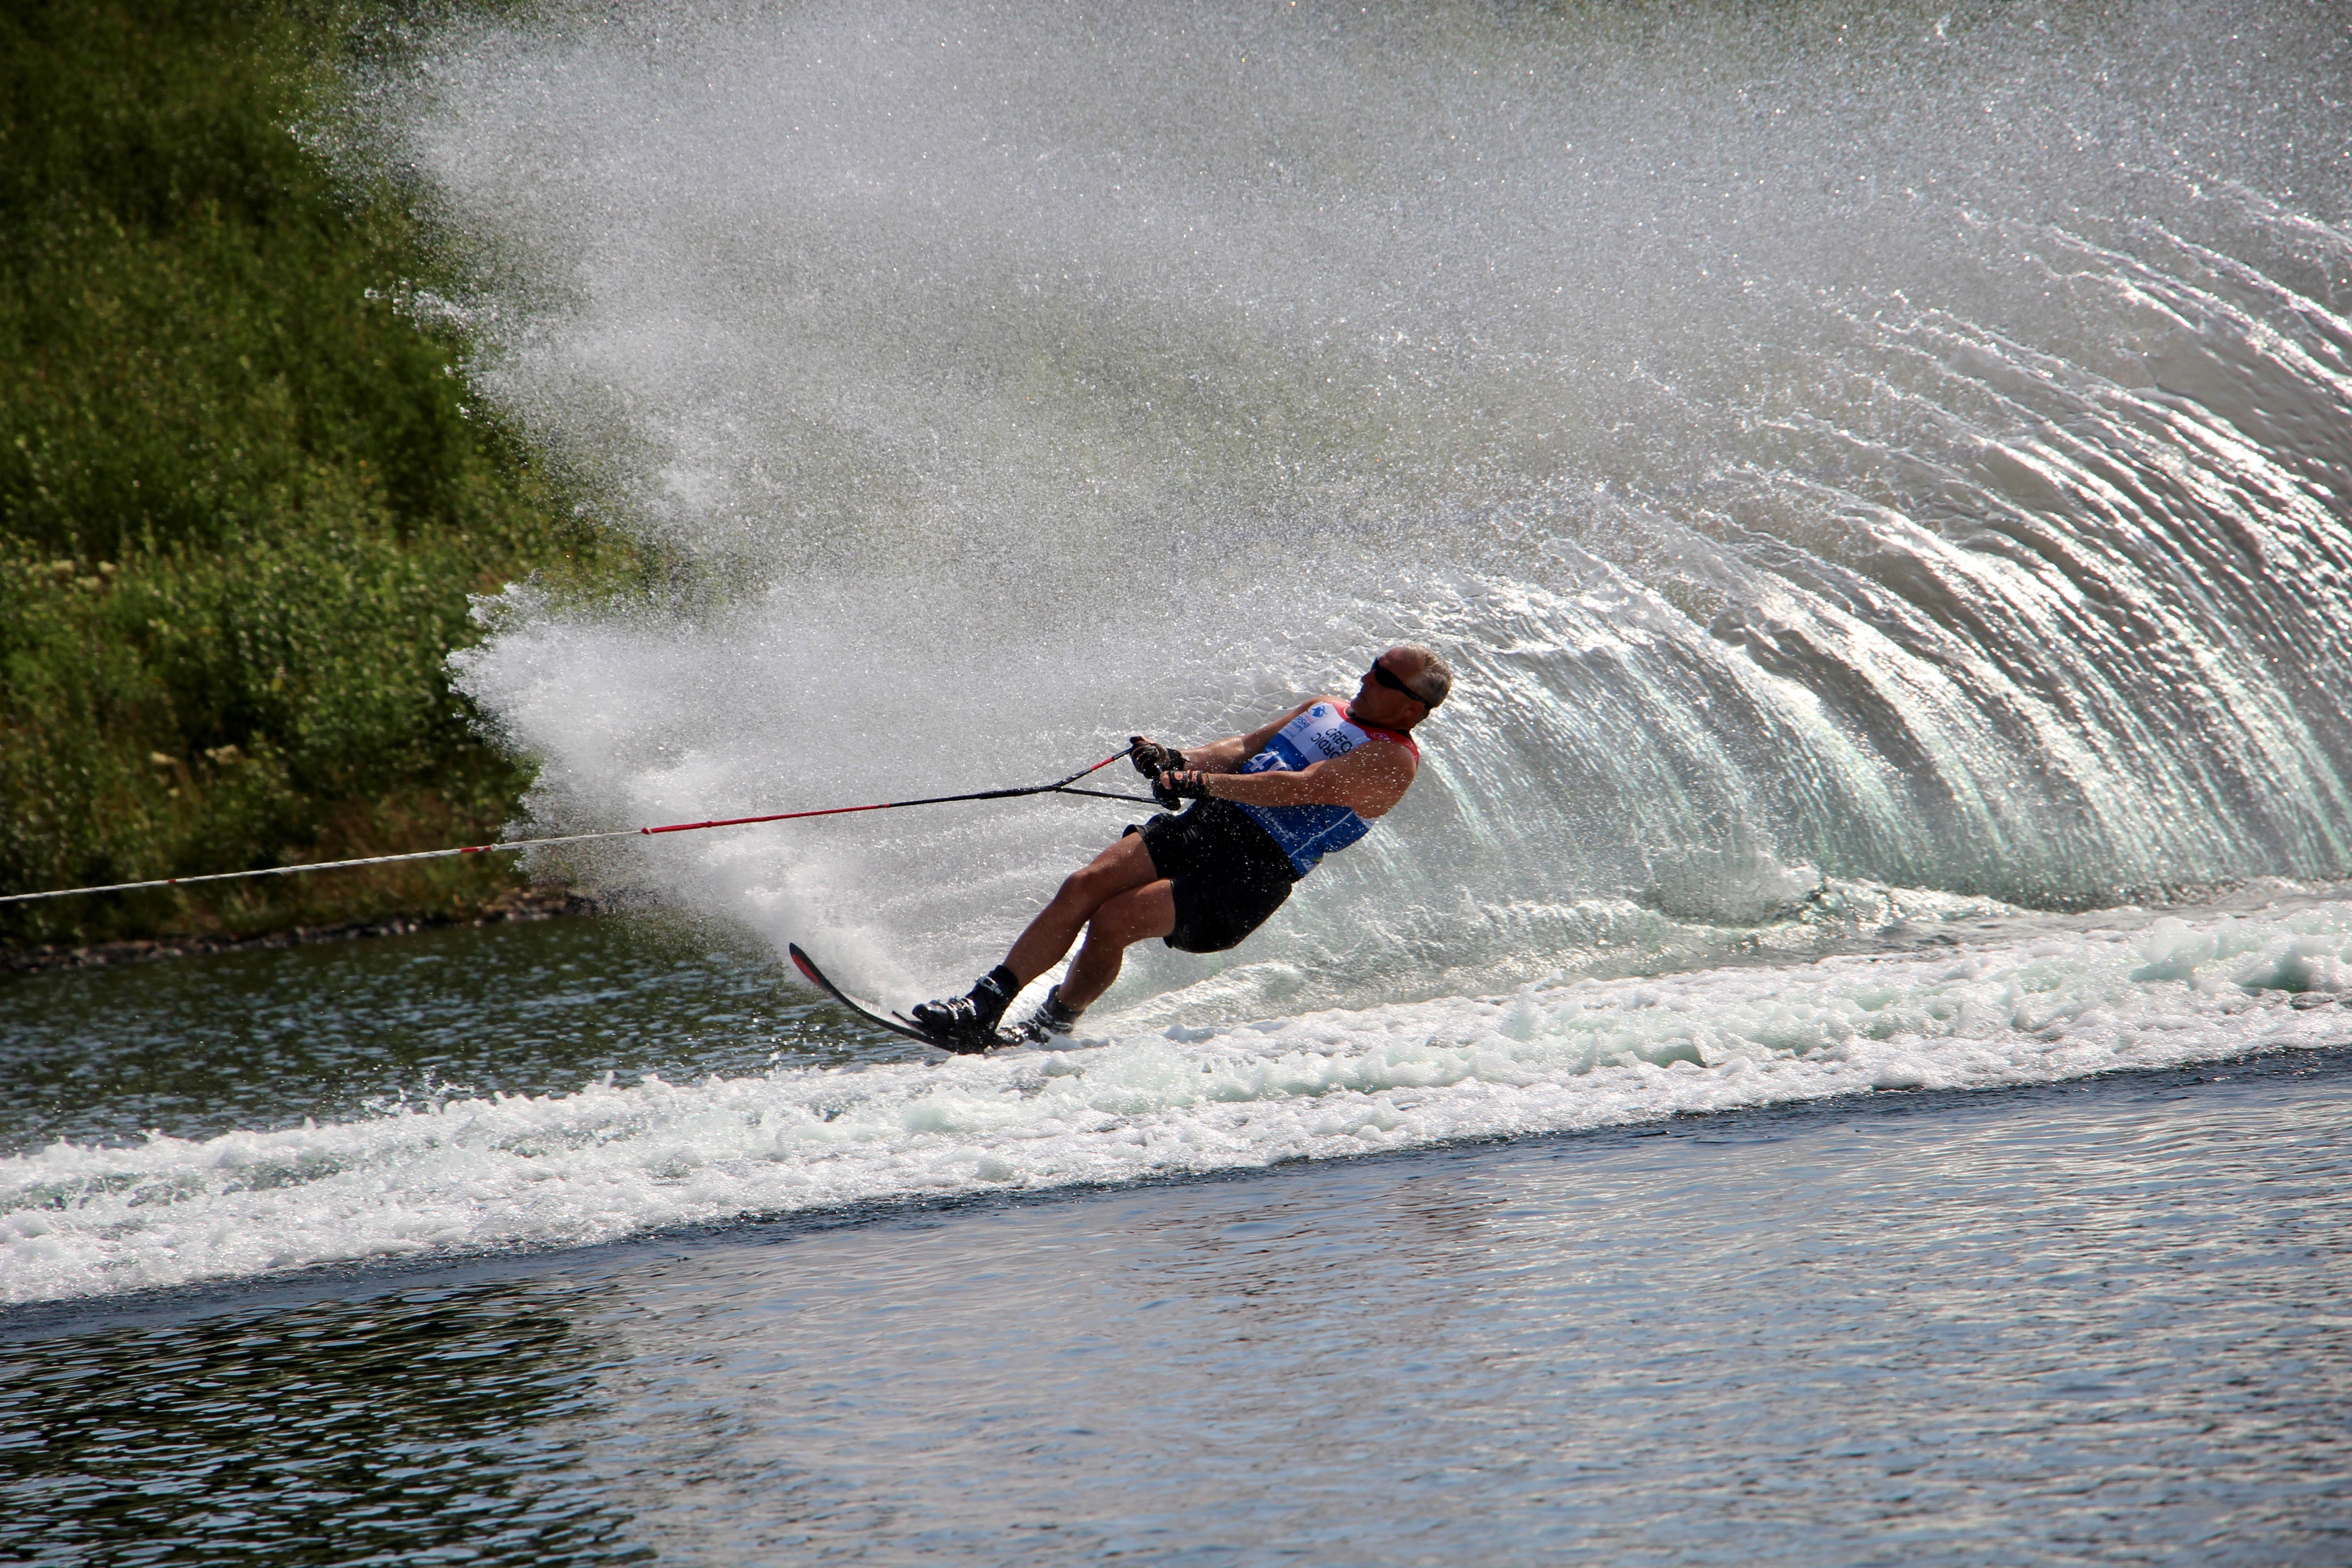 Mike skiing at the 2019 World Disabled Water Ski Championships.